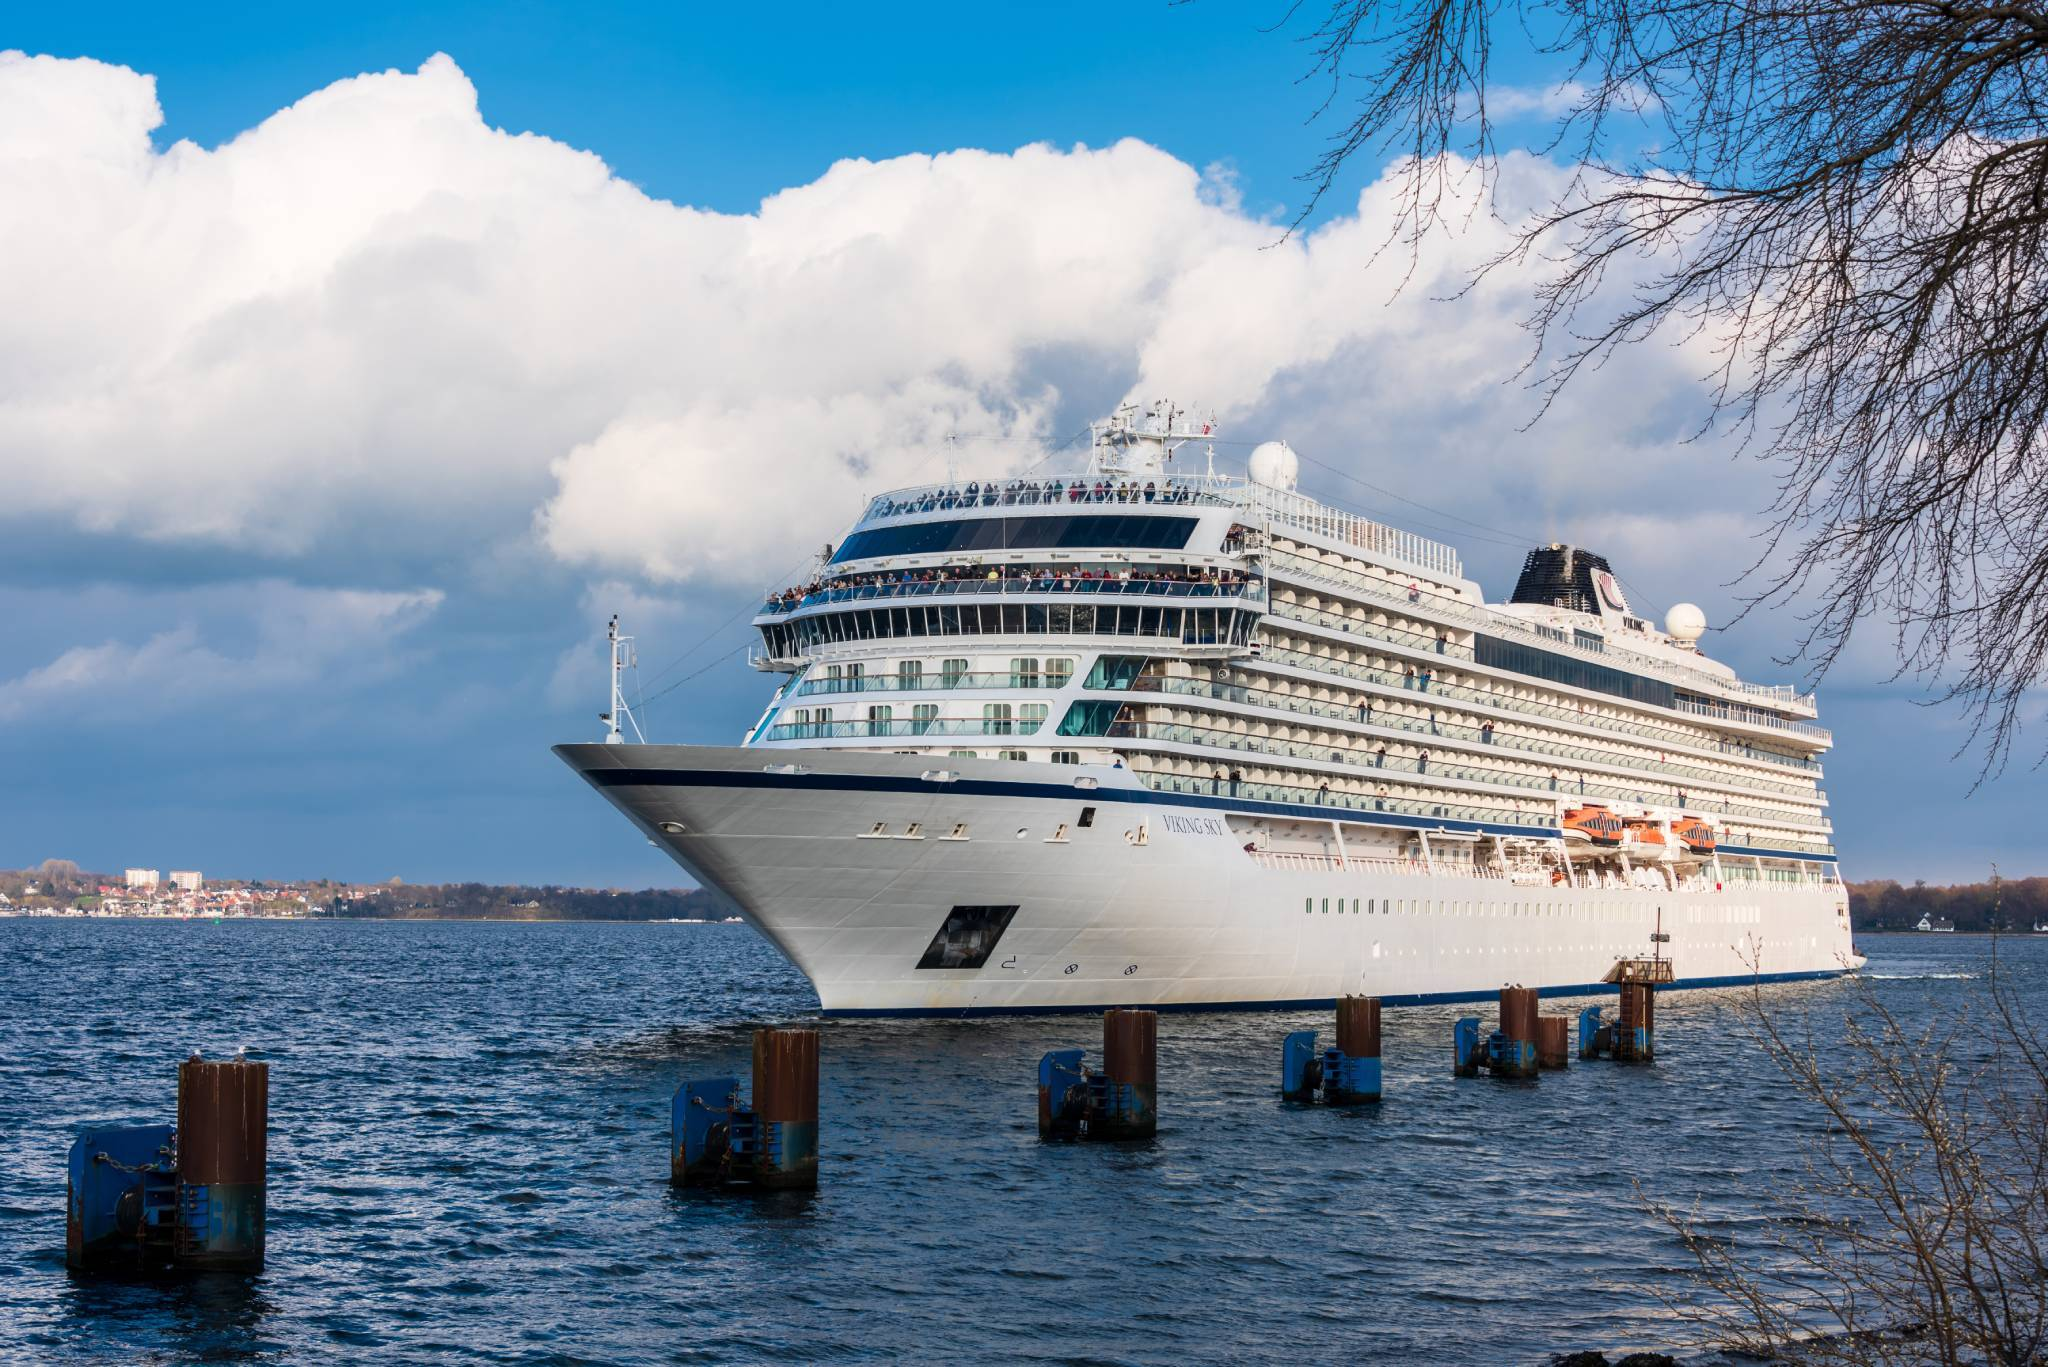 These cruise lines are requiring passengers to be vaccinated before they can board